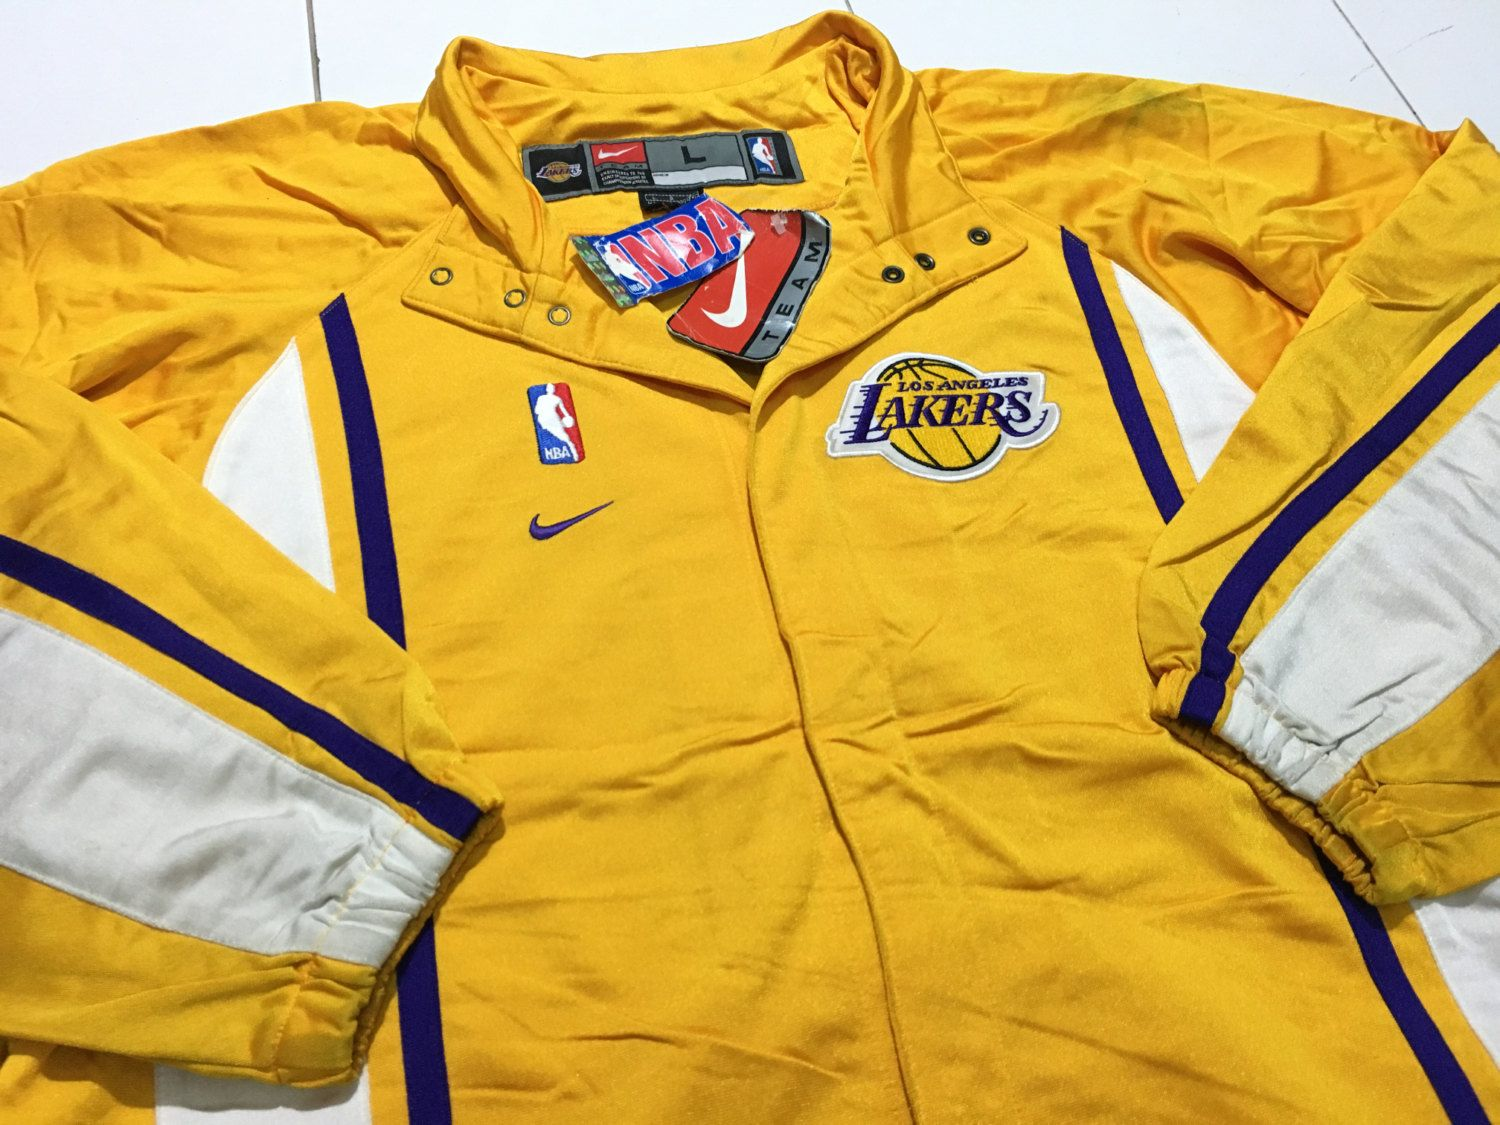 Vintage 90s Nike Los Angeles Lakers Warm Up Jacket Nba Gold With Tag Size L Clothes Jackets Los Angeles Lakers